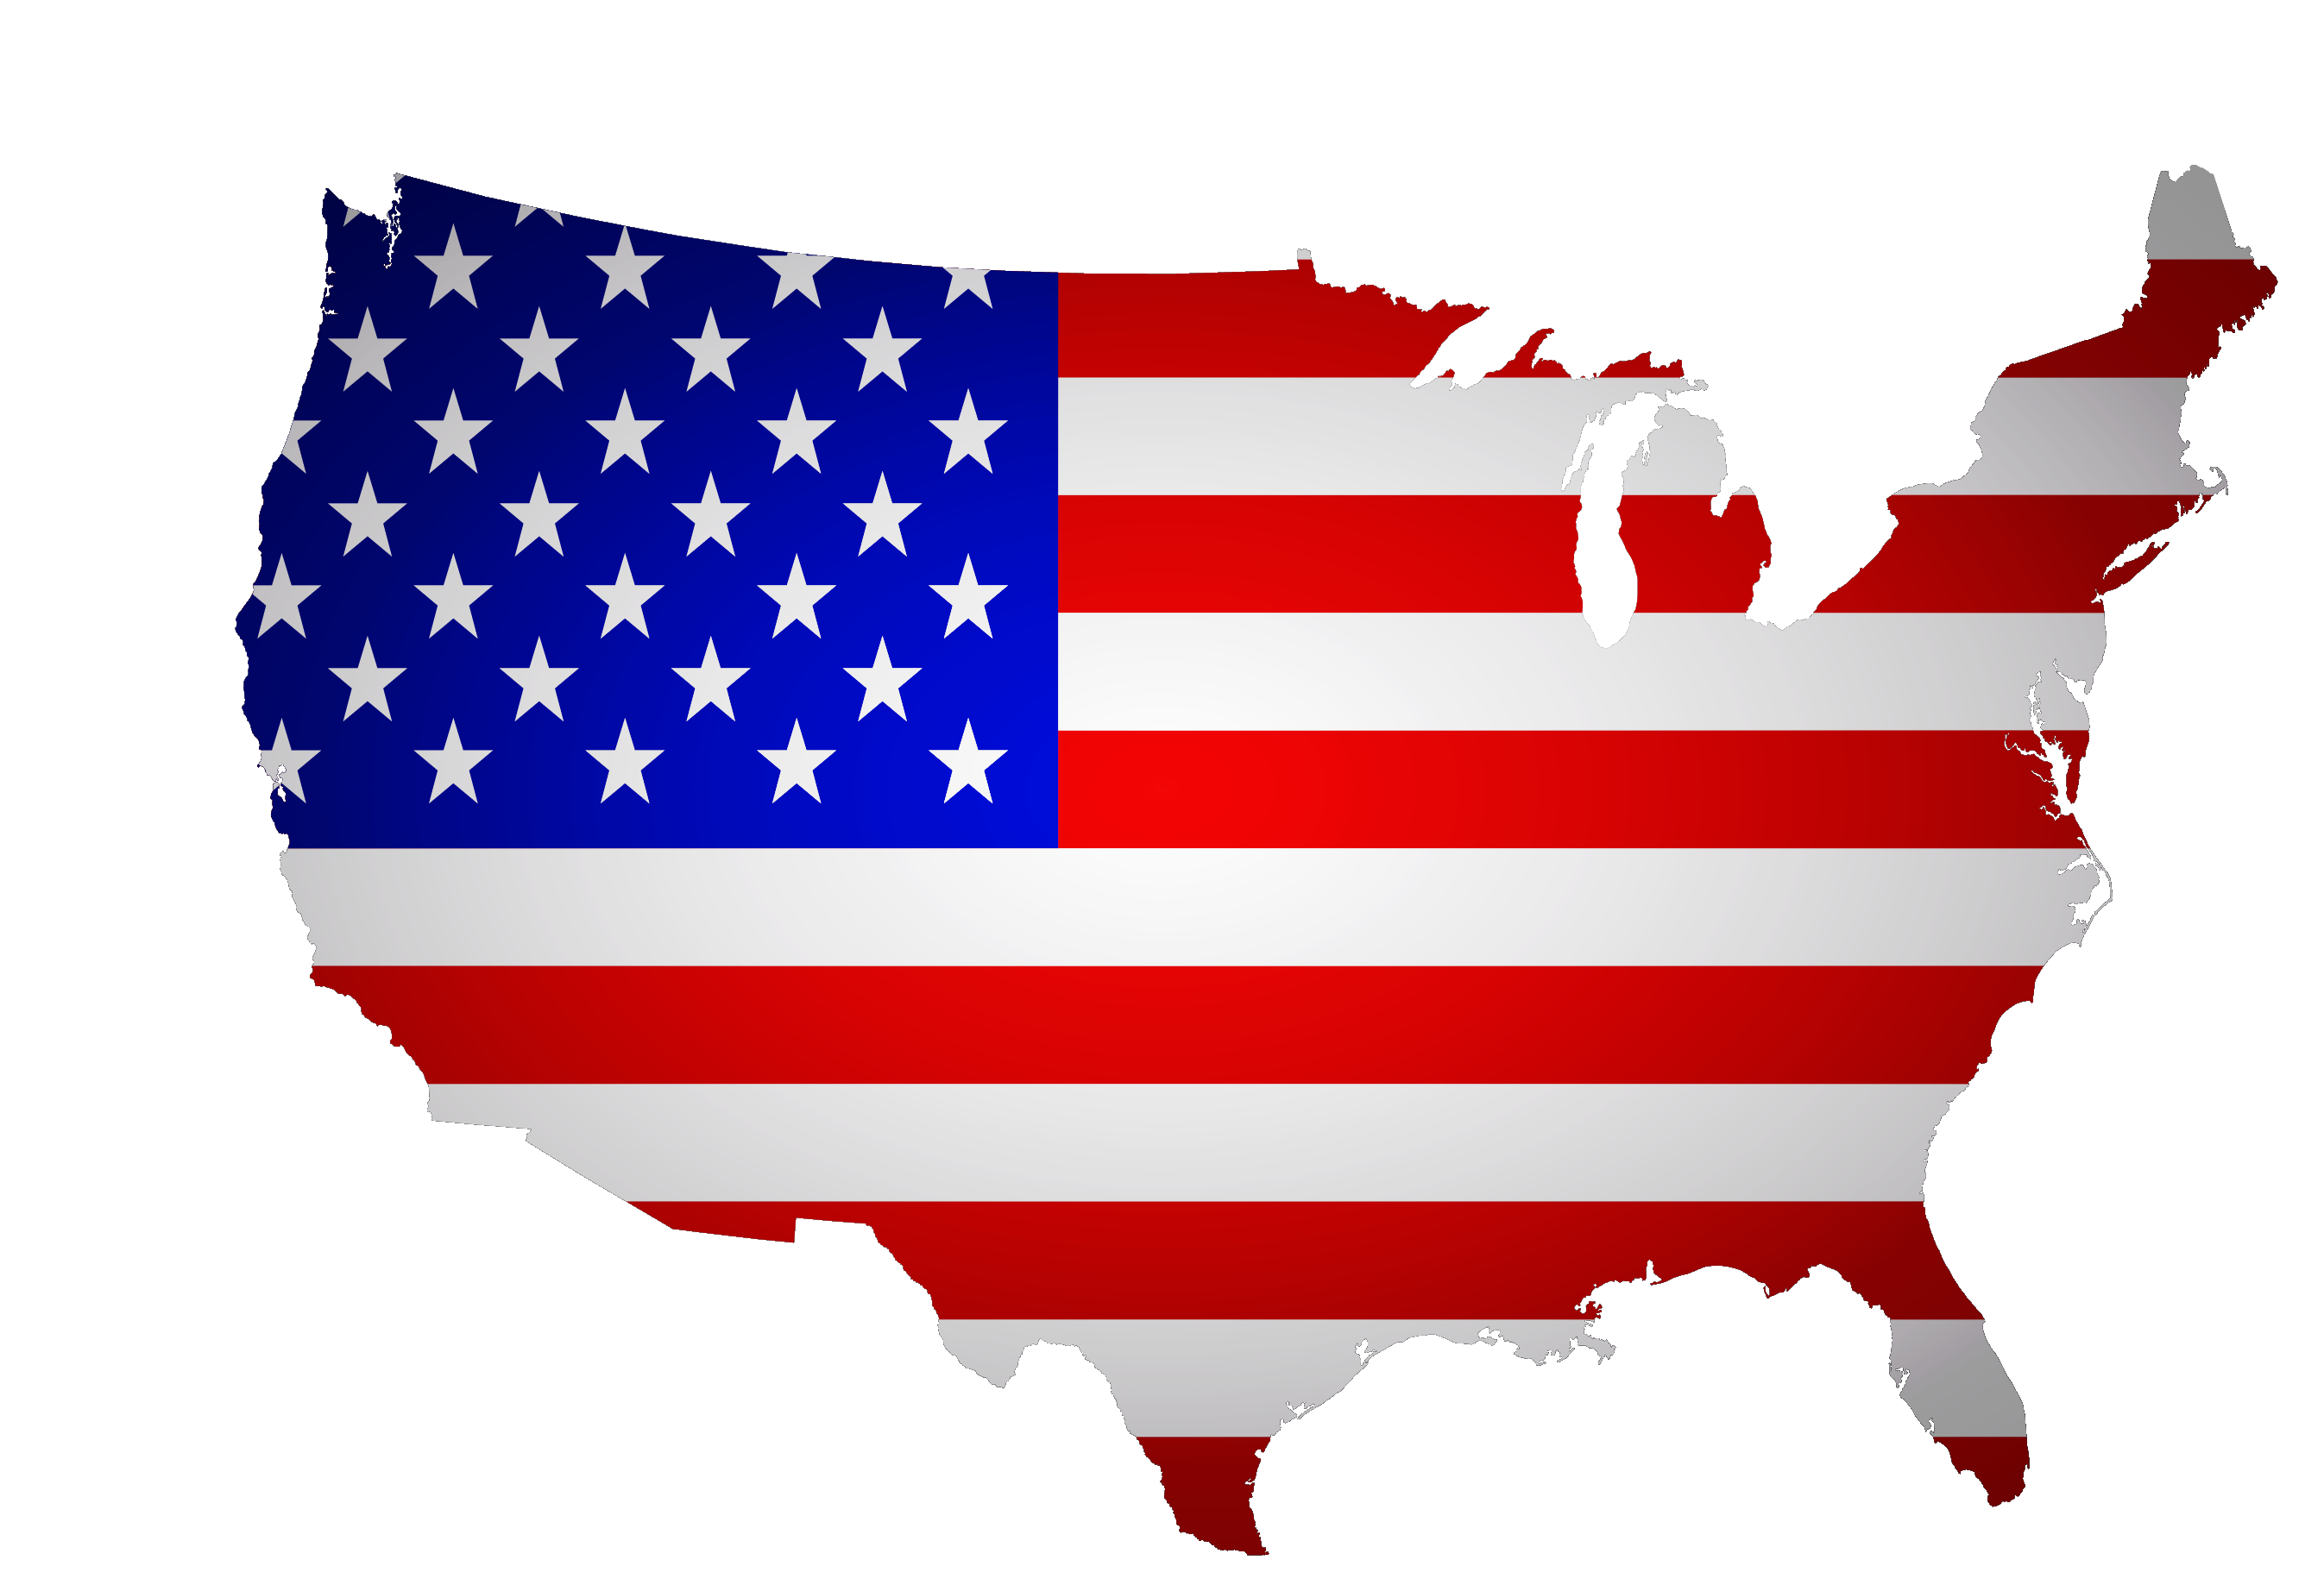 Usa flag map png. Florida of the united